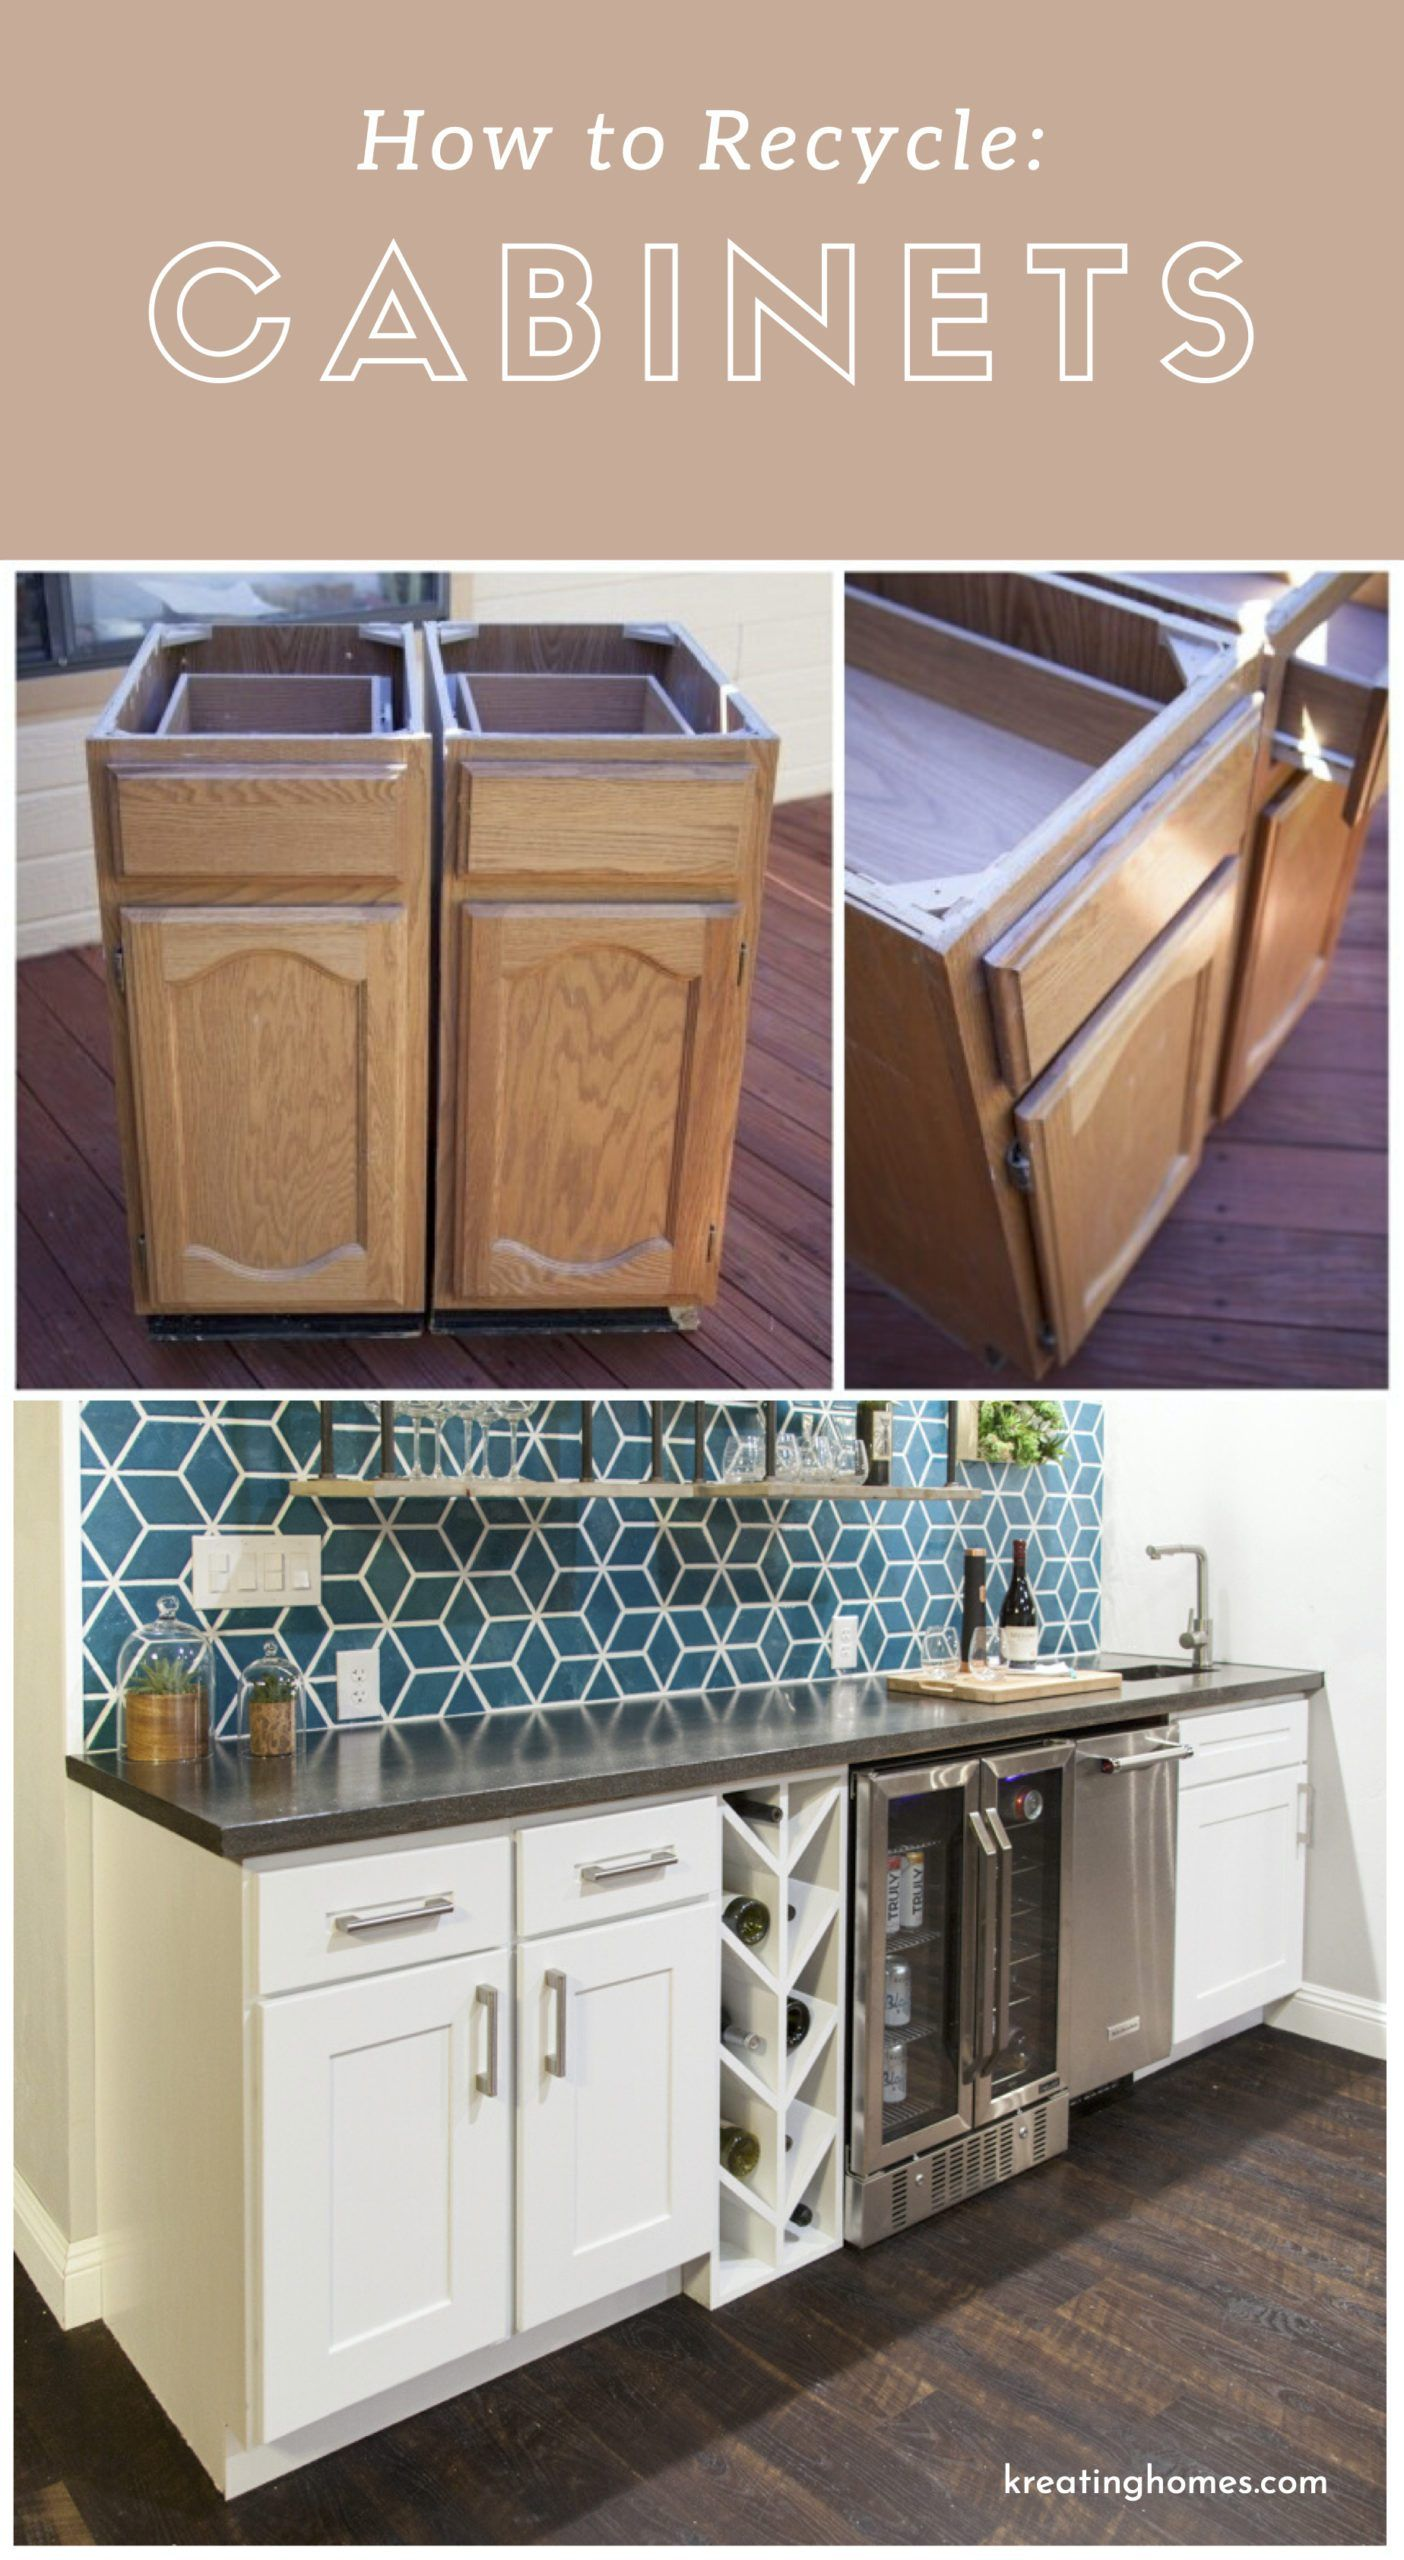 Recycled Kitchen Cabinets Kreating Homes In 2020 Recycled Kitchen Diy Kitchen Renovation Repurposed Kitchen